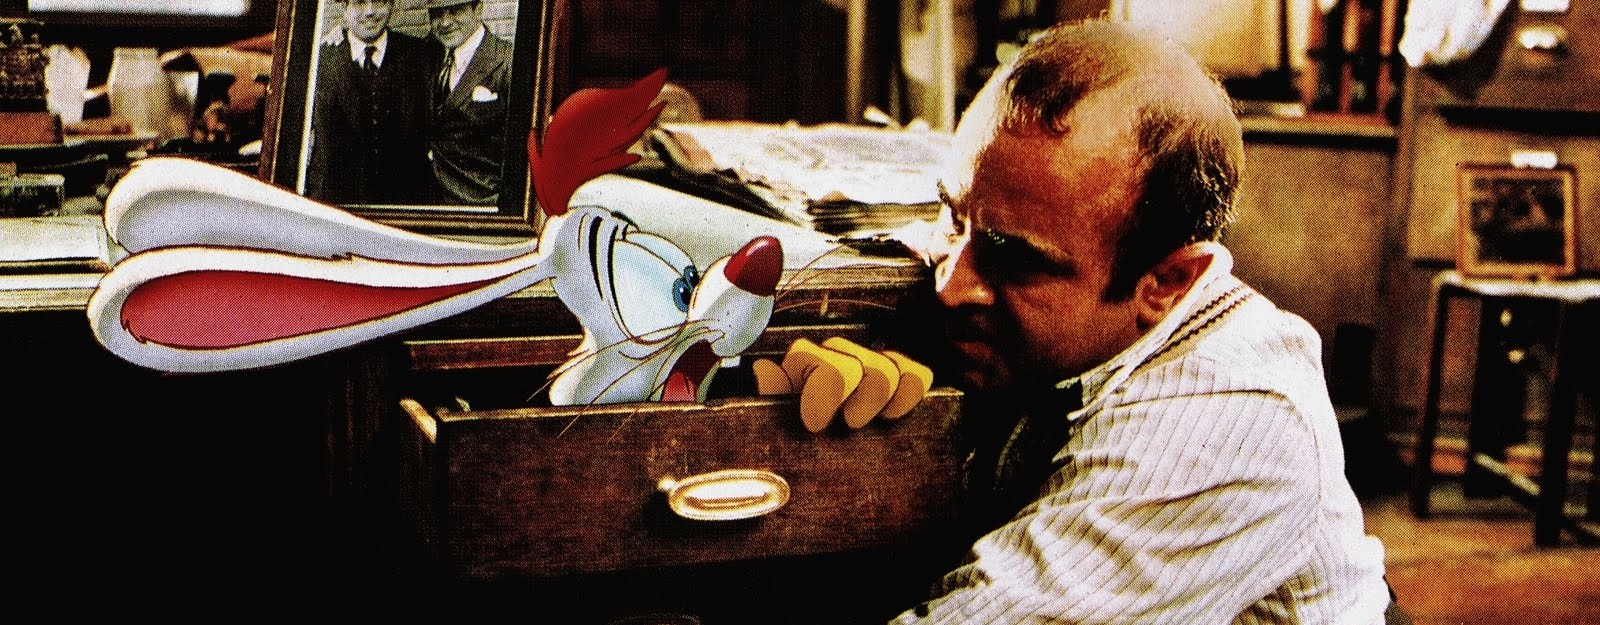 """Chi Ha Incastrato Roger Rabbit?"" (1988)"